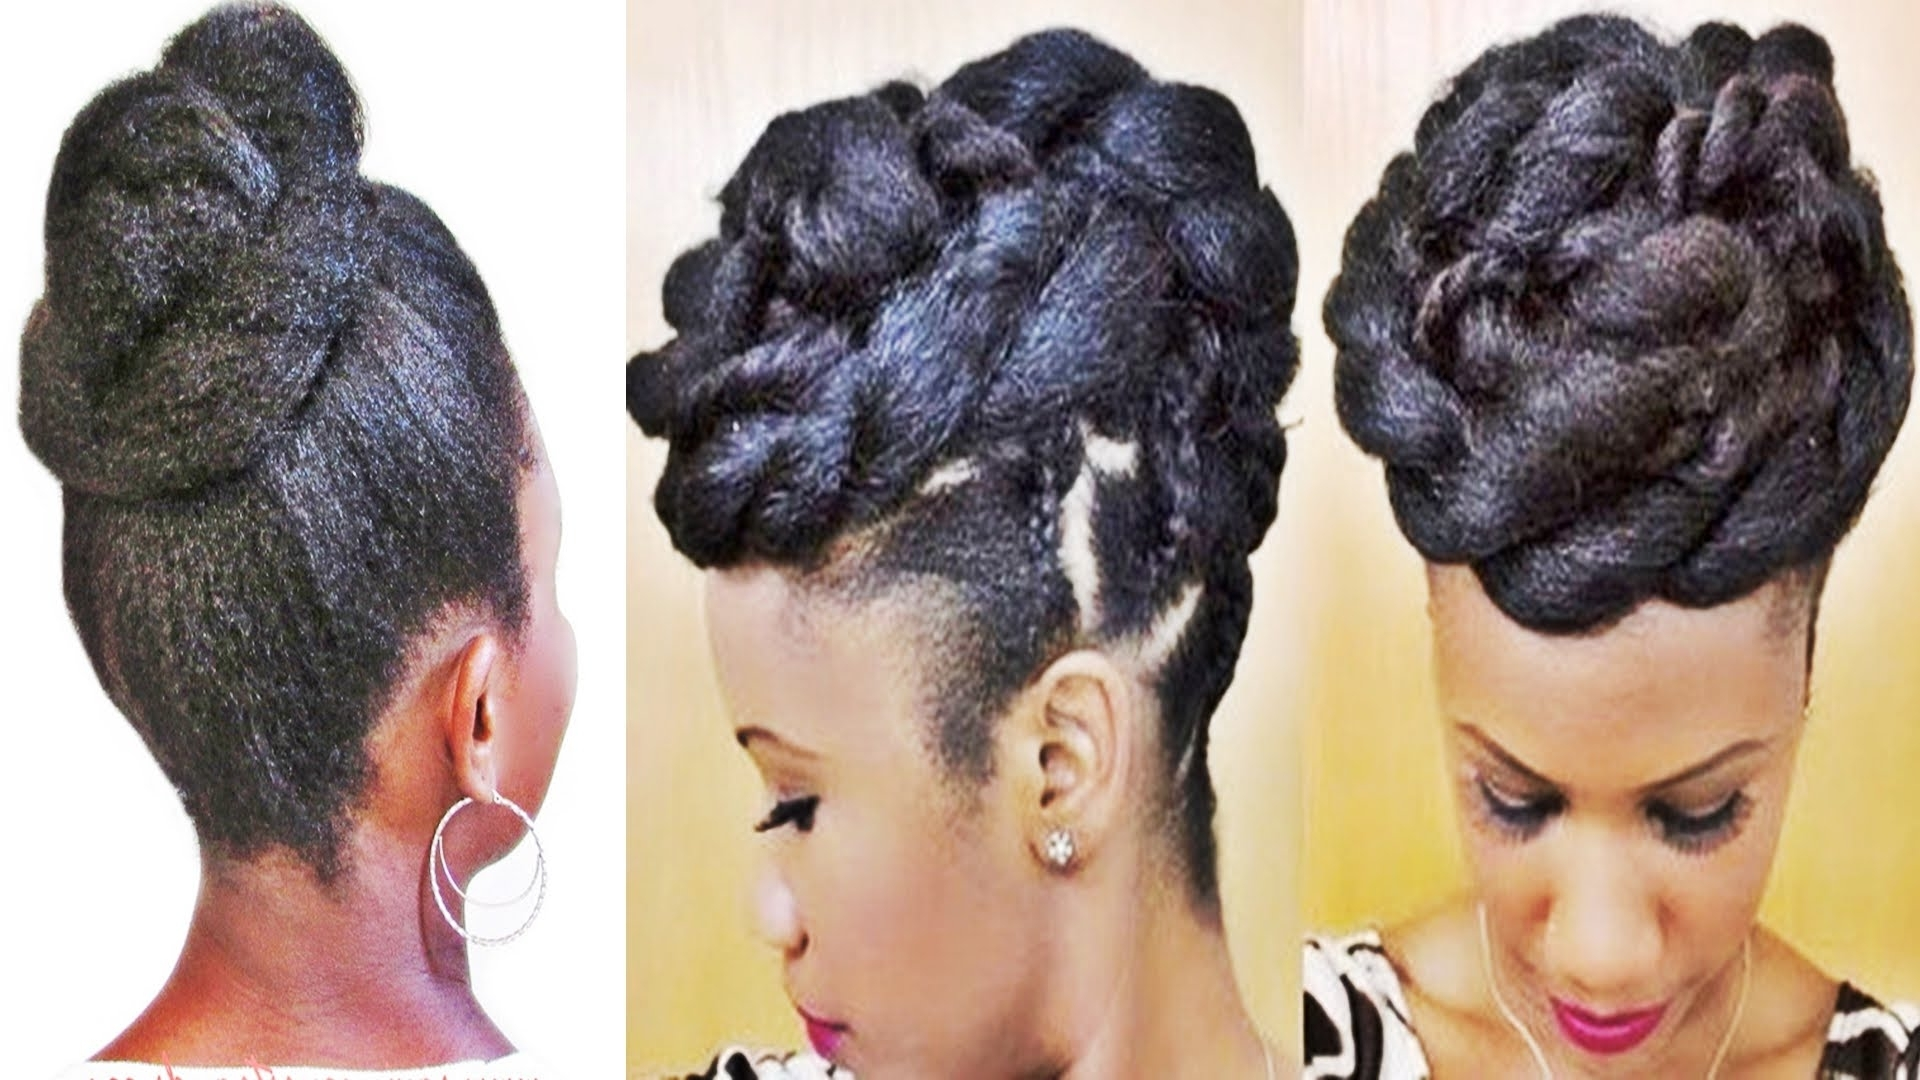 Braids And Twists Updo Hairstyle For Black Women – Youtube With Braided Updo Hairstyles For Black Women (View 6 of 15)